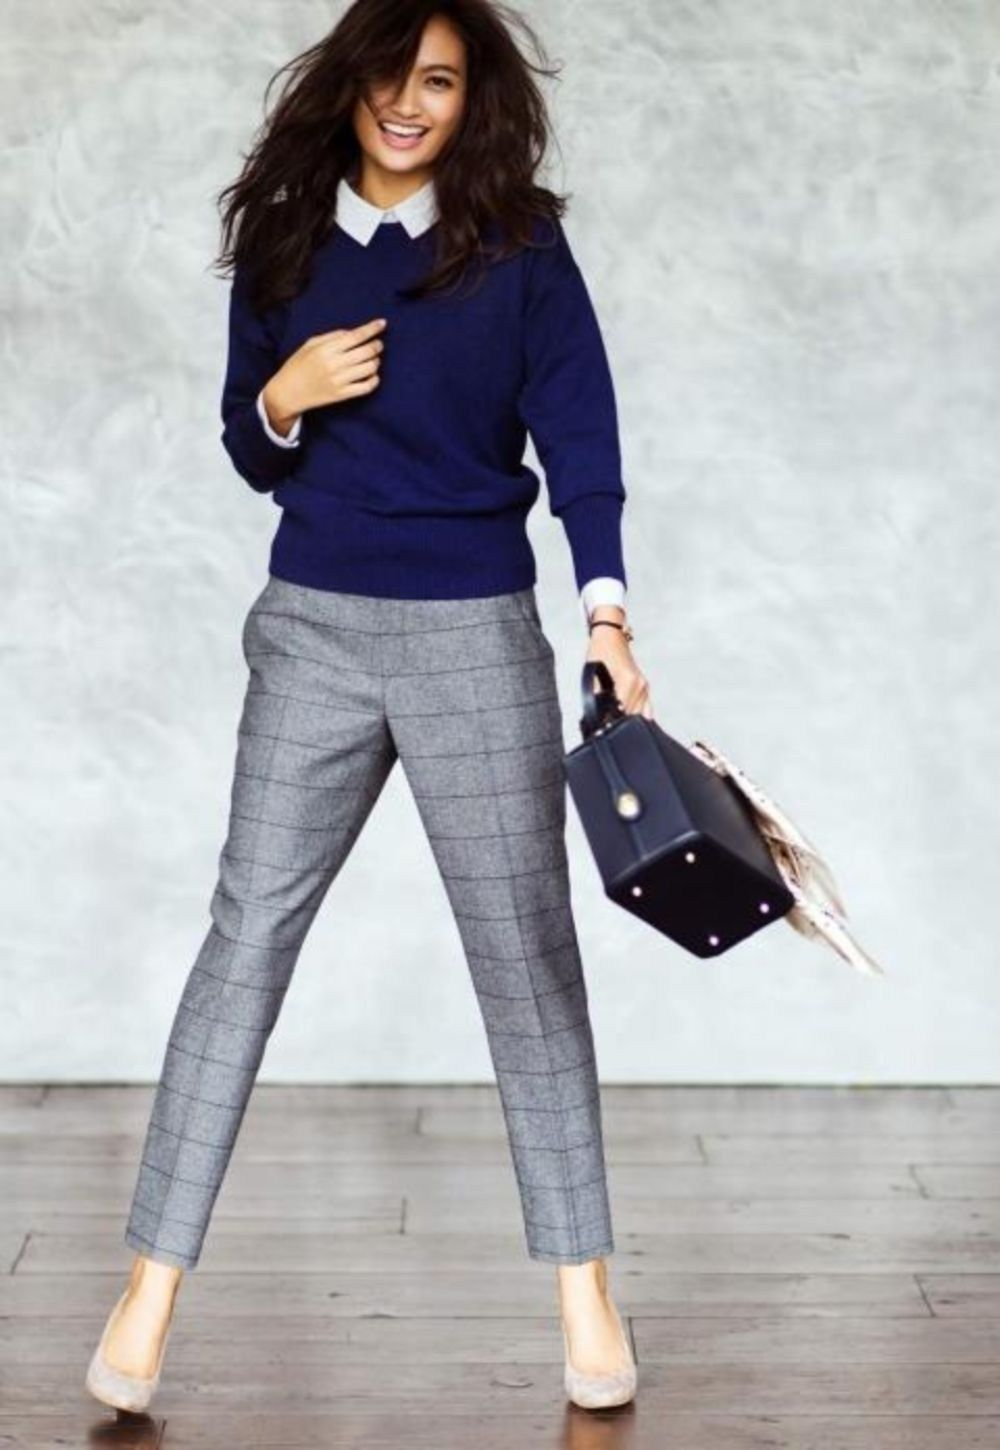 150 fashionable work outfits for women 2017 | work outfits, woman